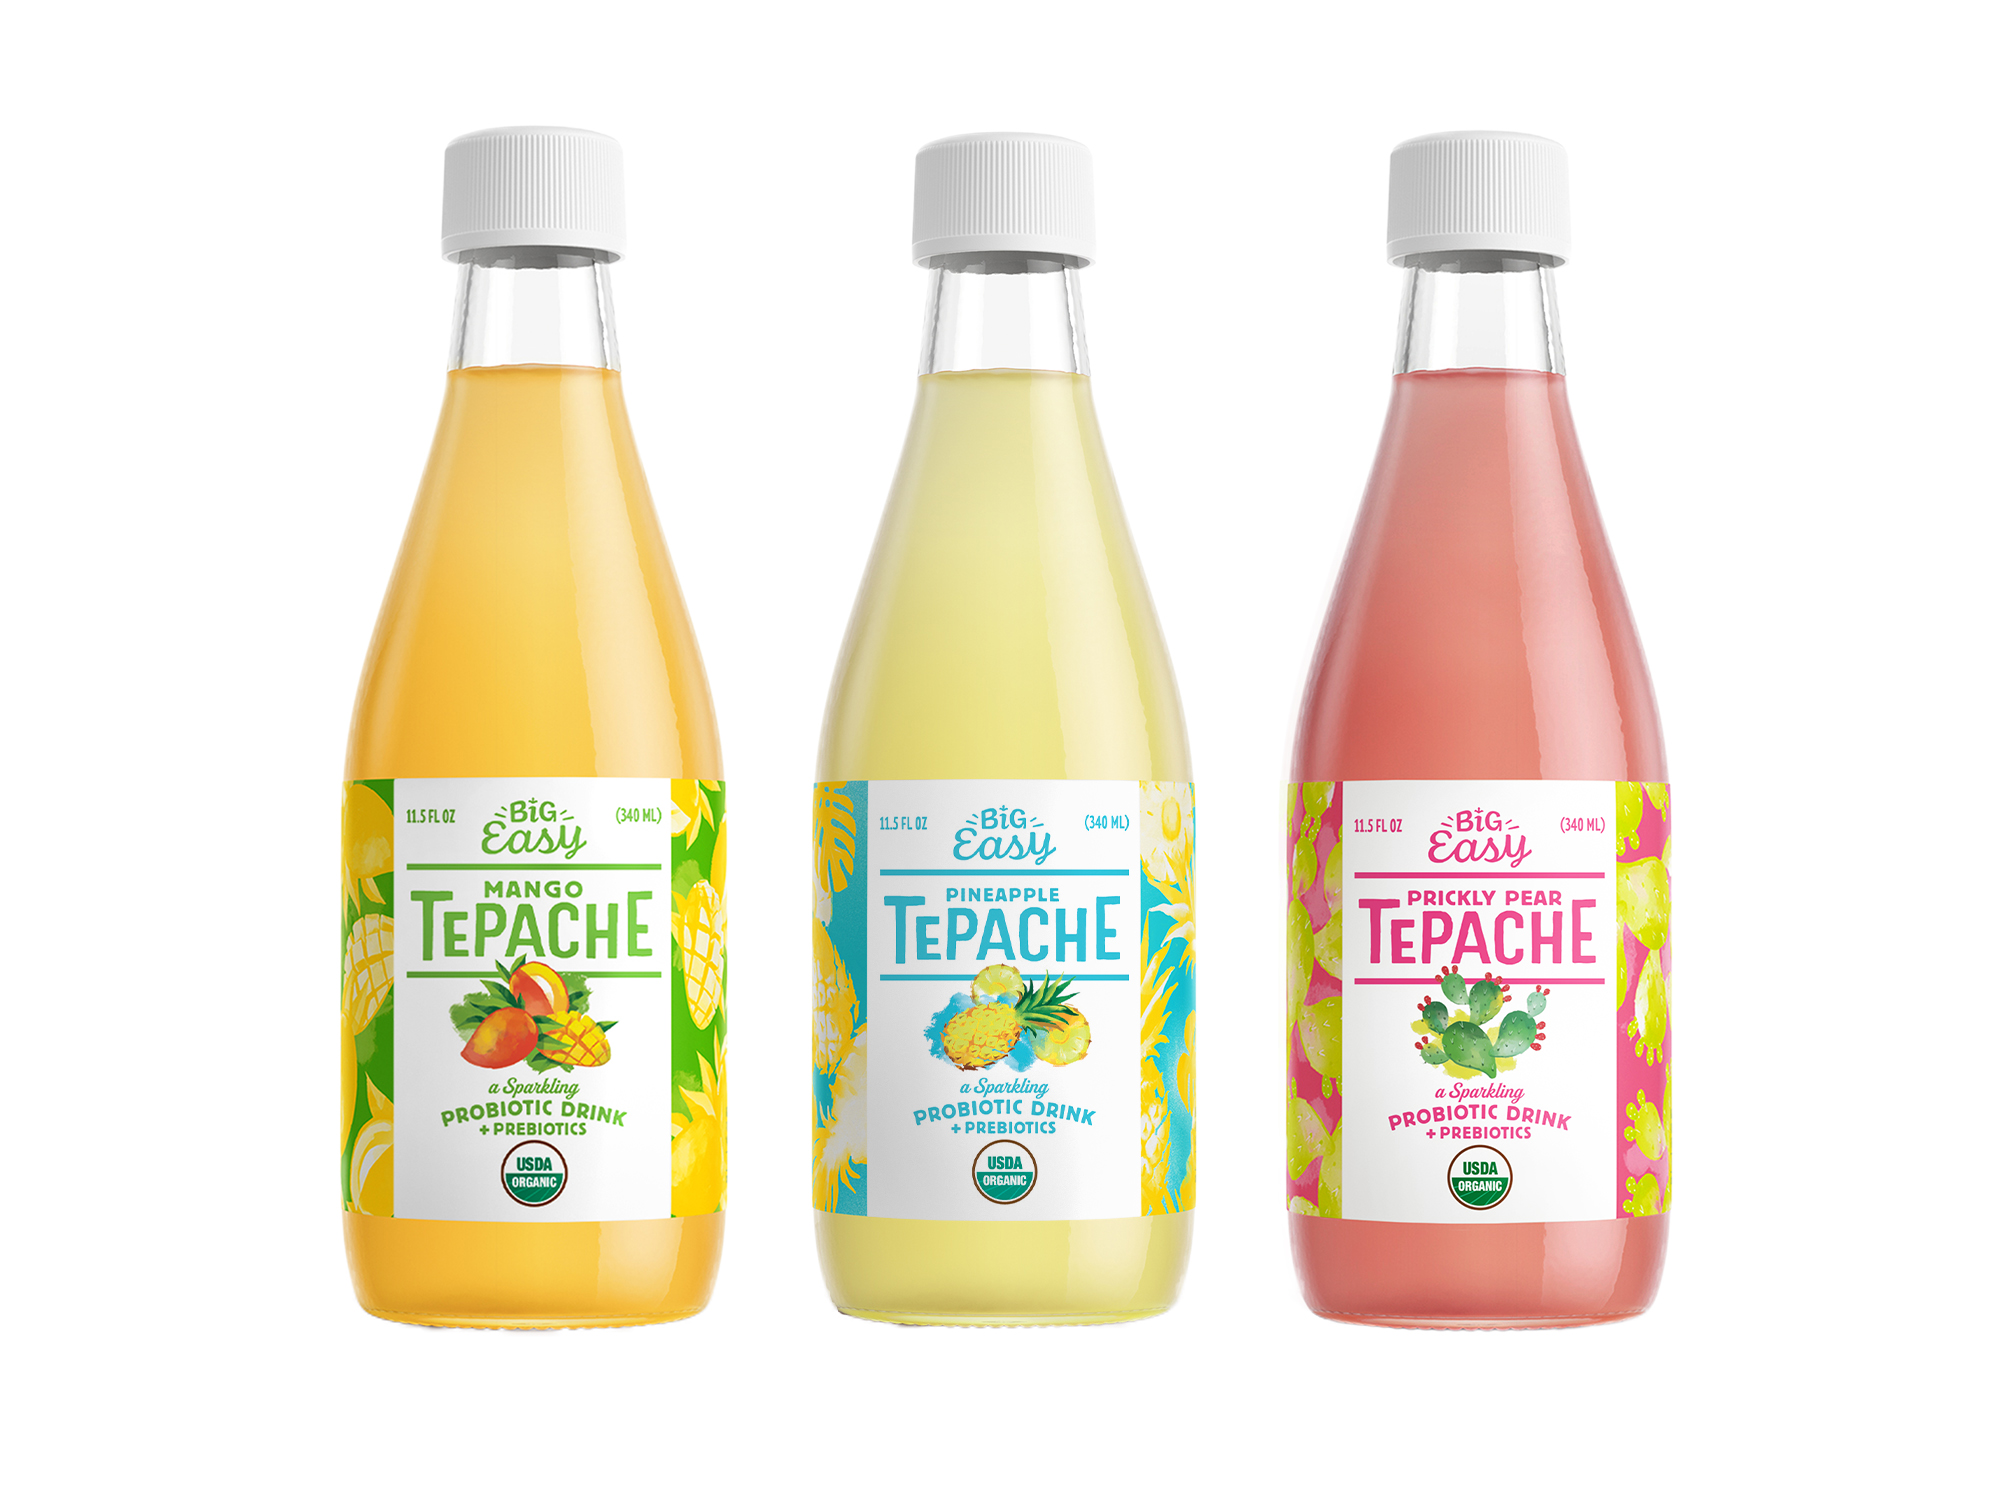 Big Easy Bucha Launches First Line of Bottled Probiotic Tepache Beverages in 2,000 U.S. Retail Locations